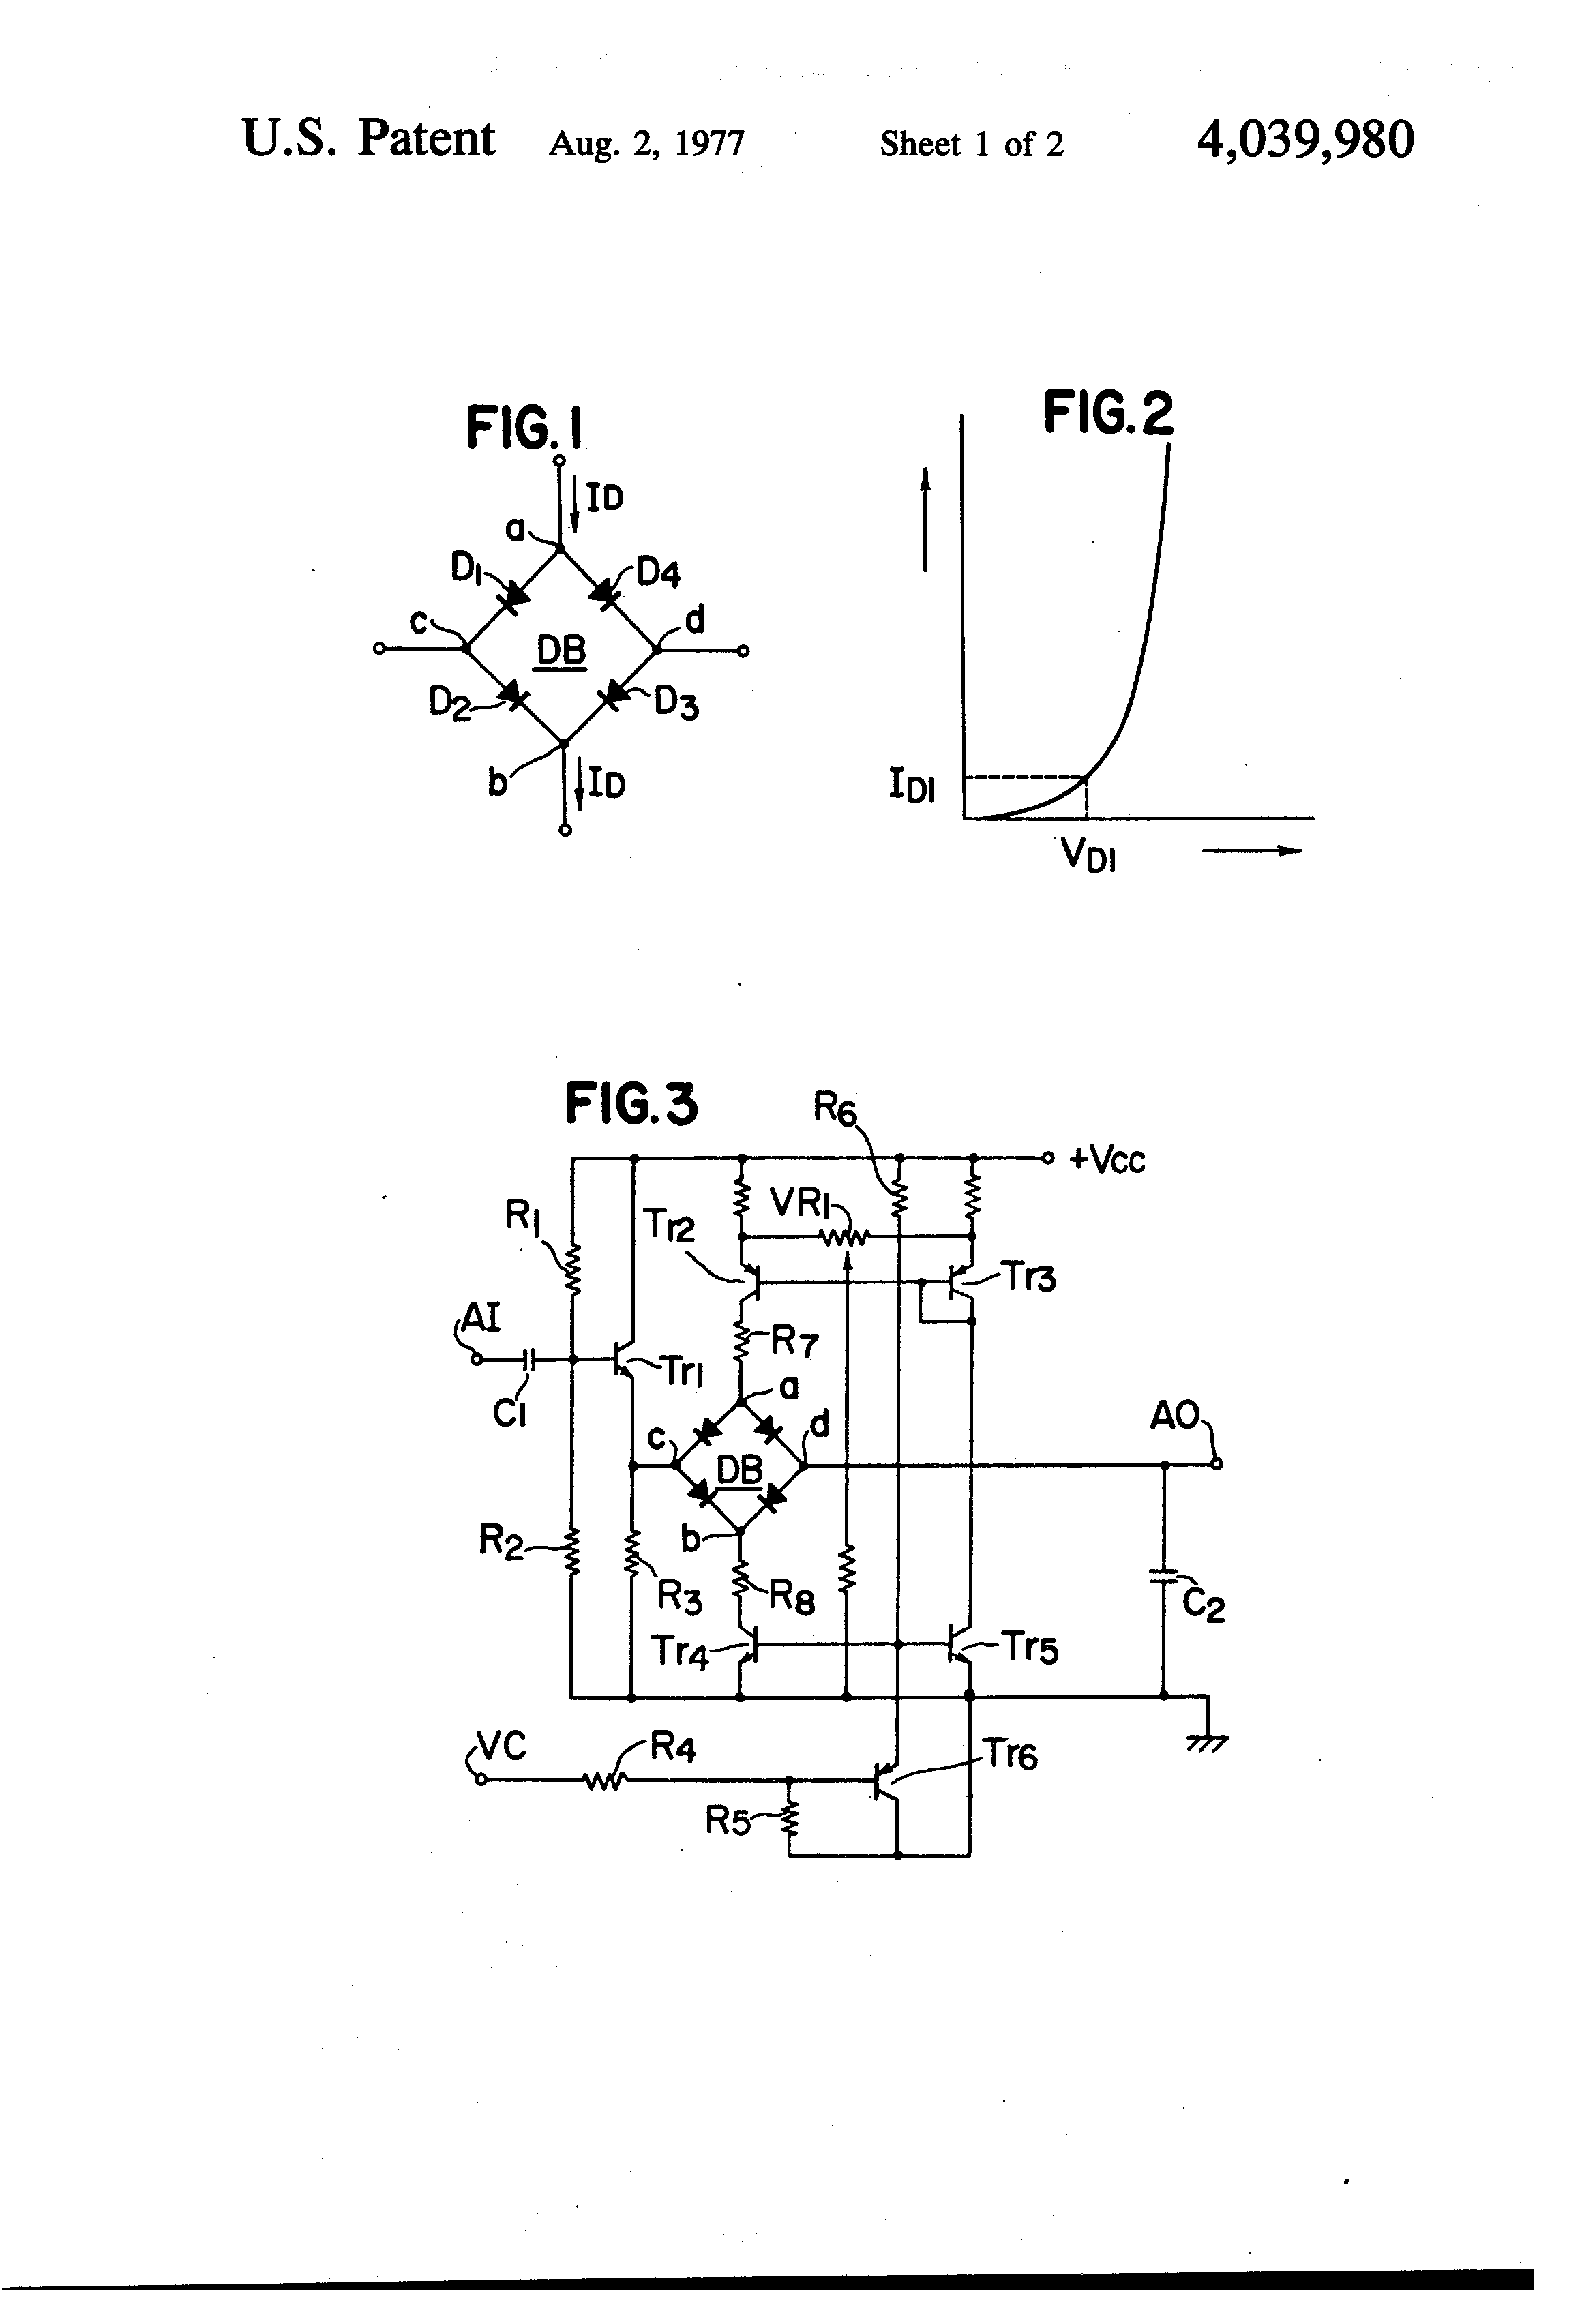 filter - Controlling the current through a Diode Bridge VCF